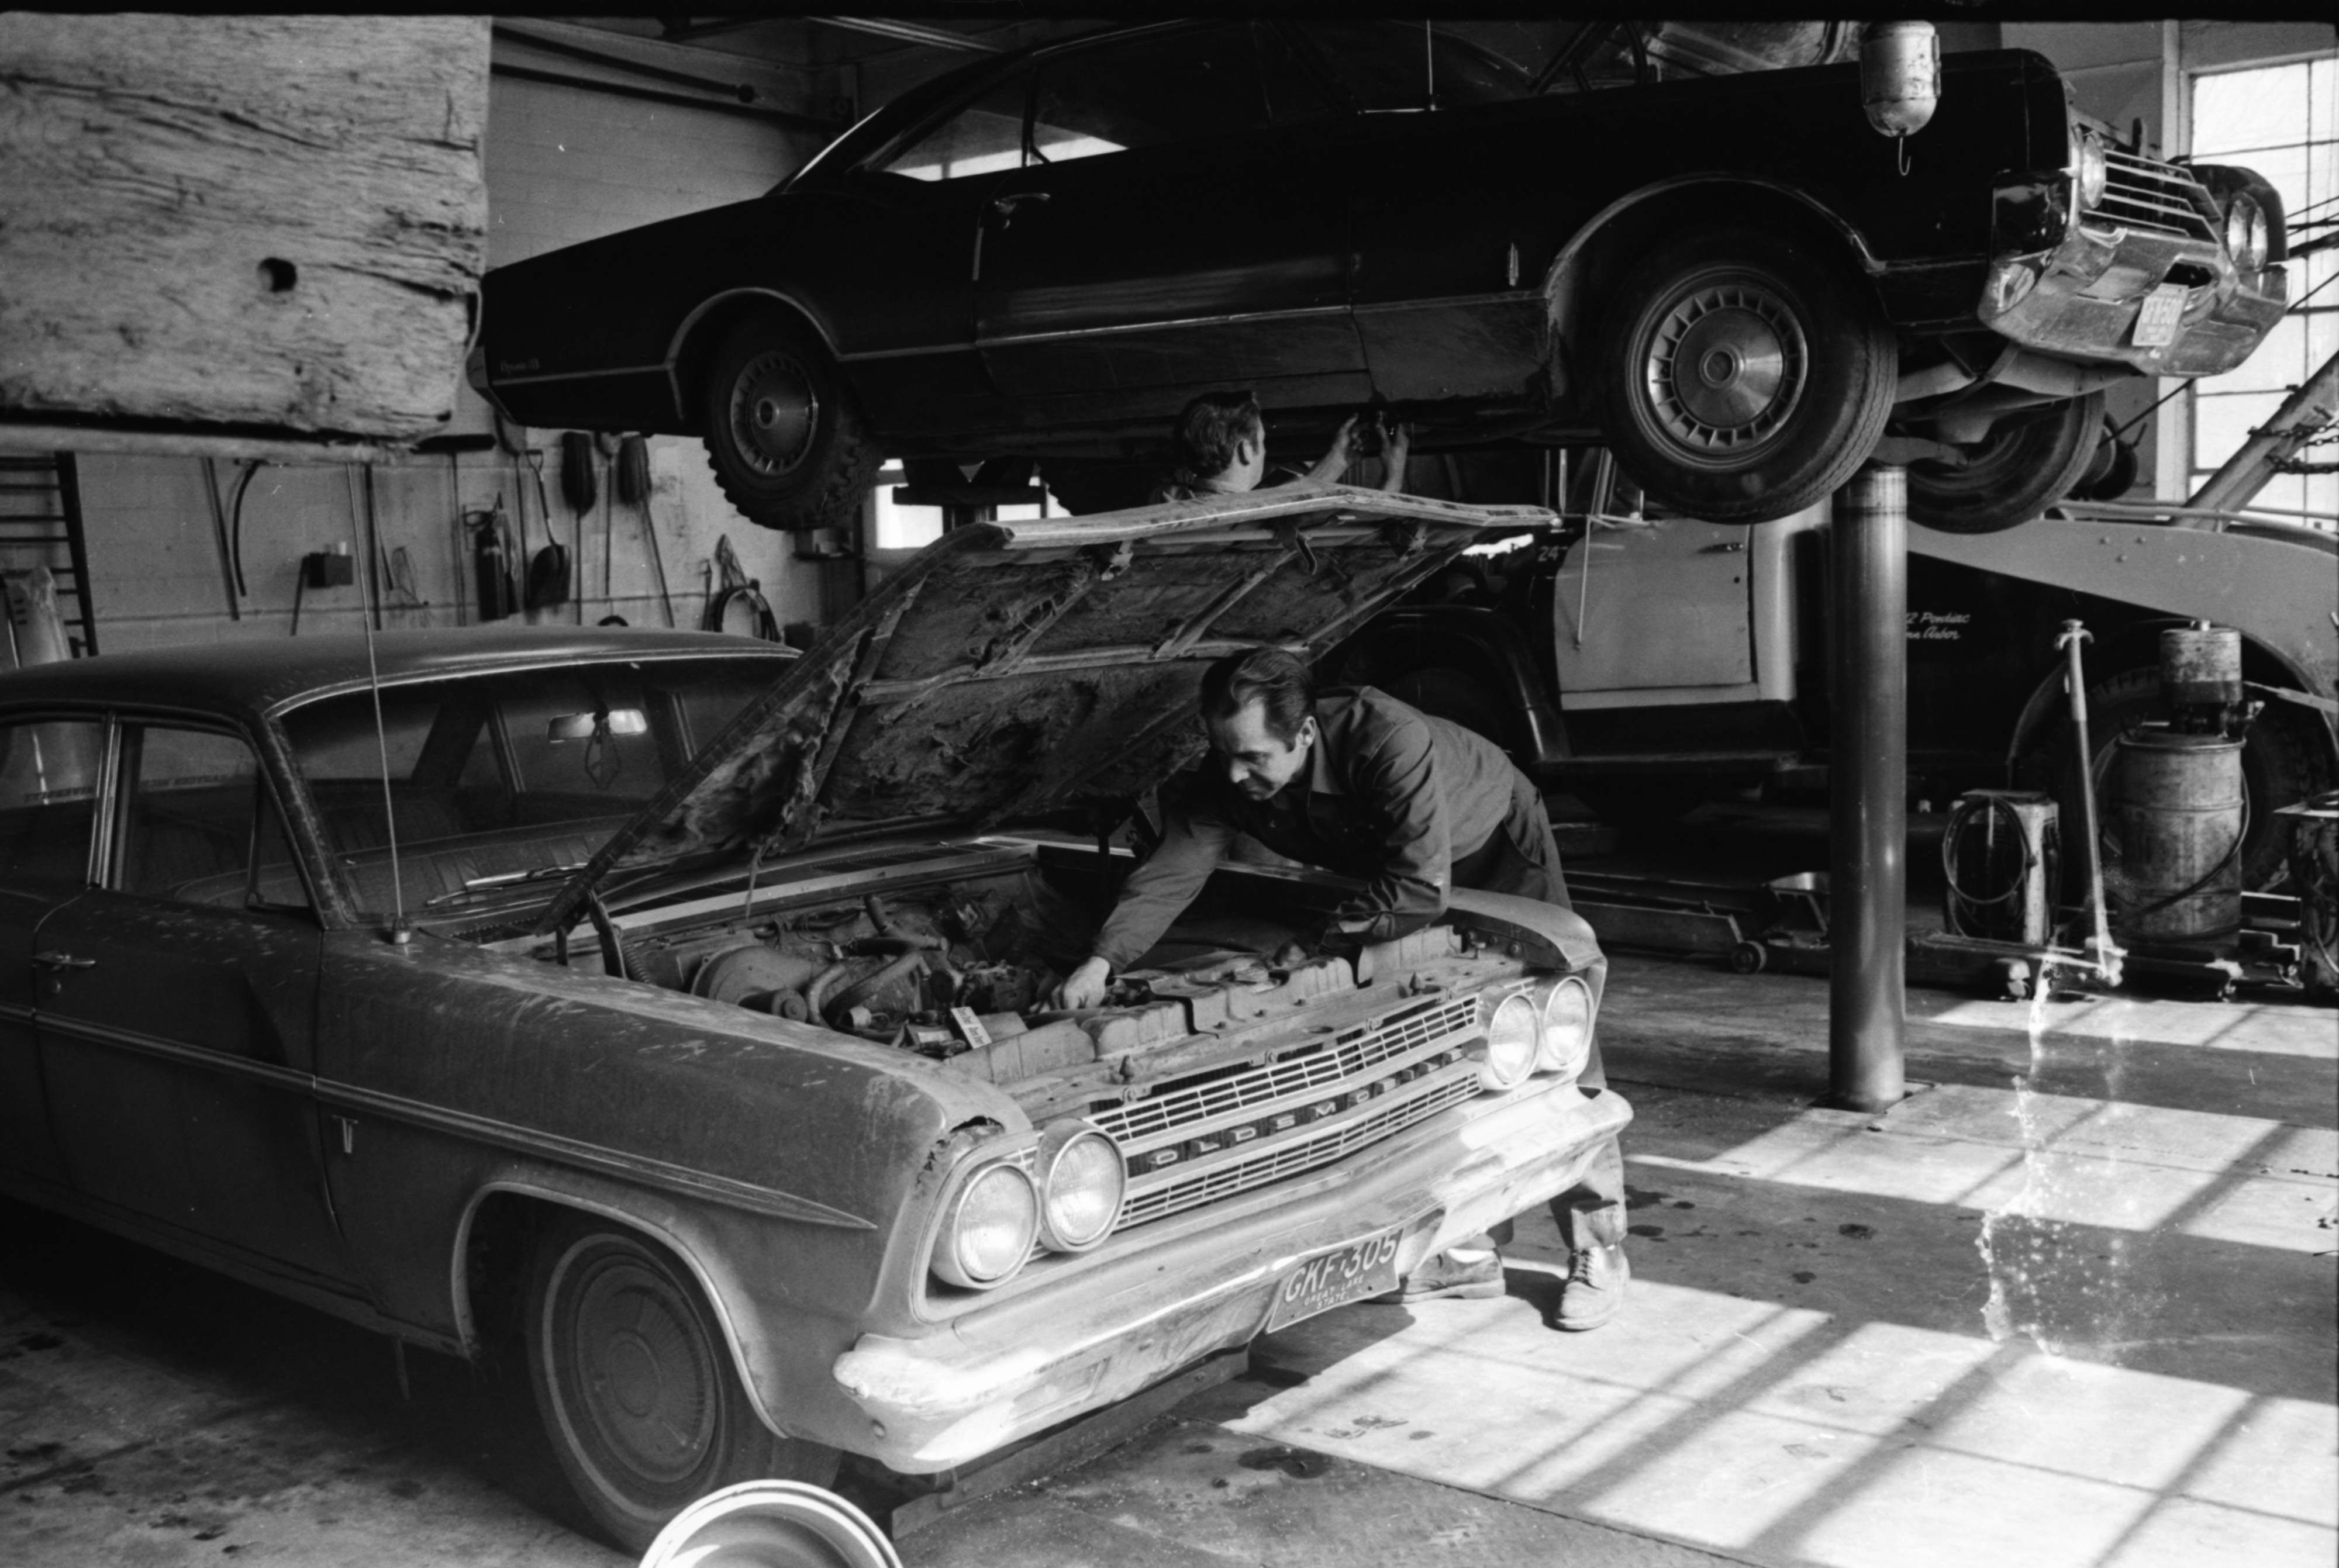 Under the Hood at Hilbert's Garage, 1971 image